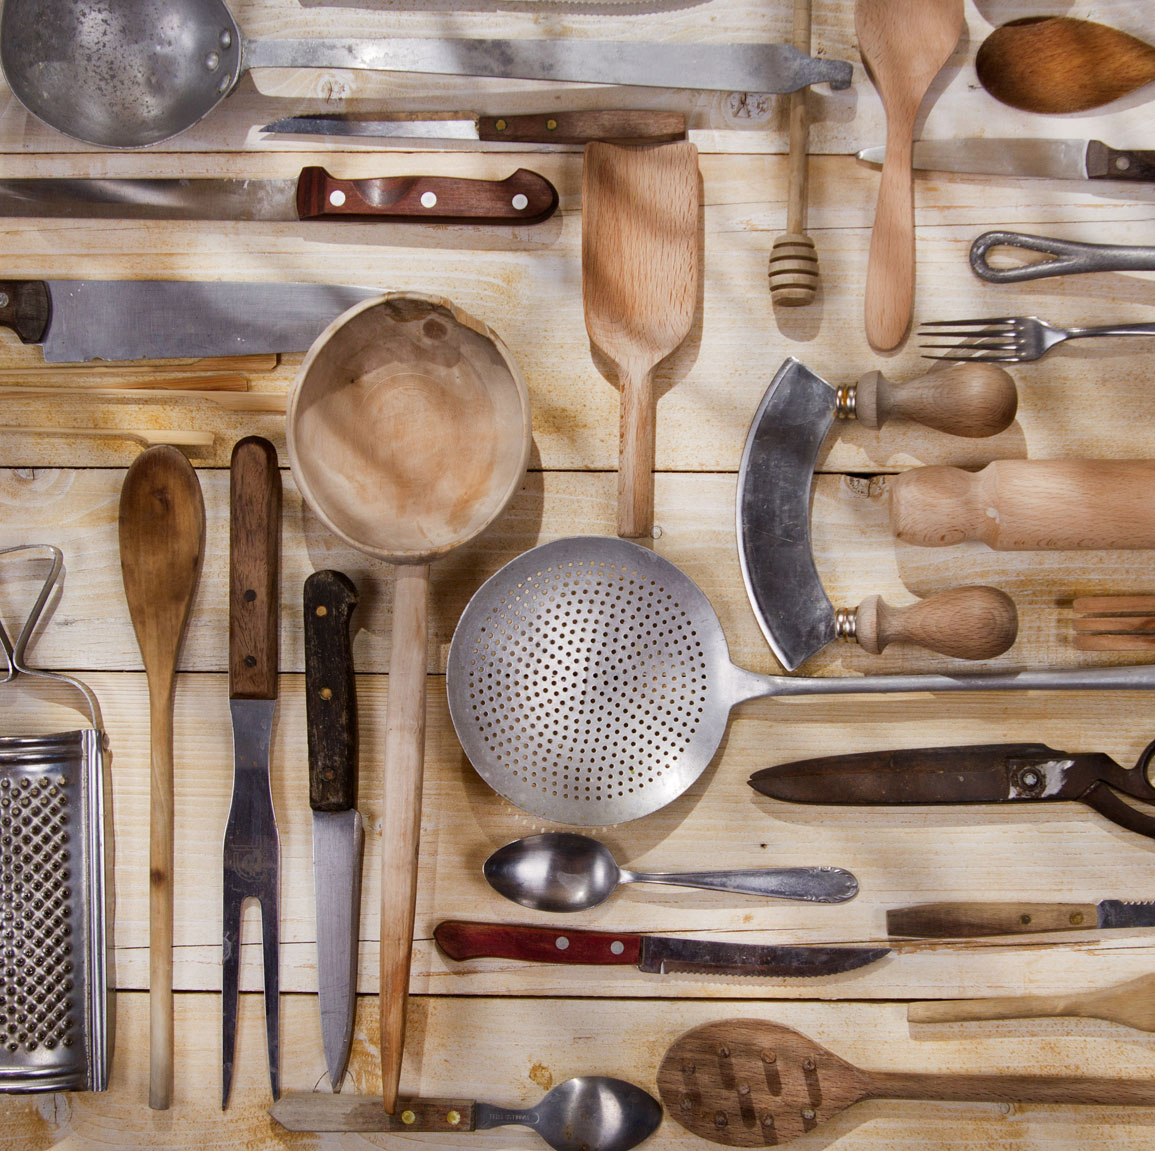 Kitchen Tools: Beginners Guide: Top 10 Kitchen Tools